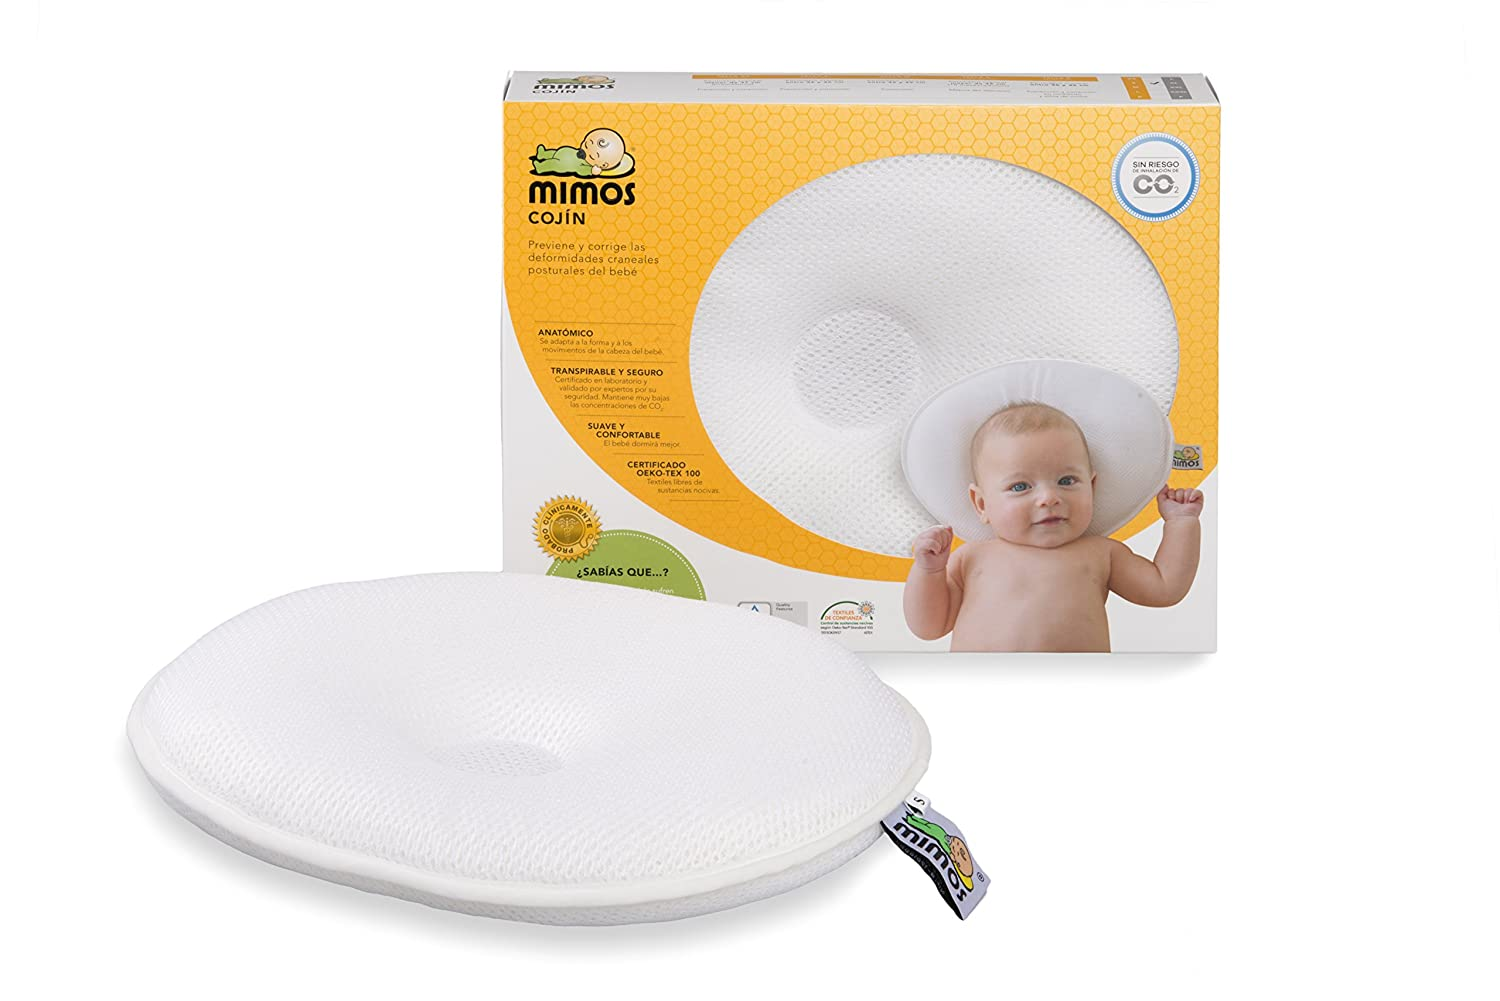 MIMOS Baby Pillow (L) for flat head (Plagiocephaly) - Air flow Safety (Anti-suffocation TUV certification)